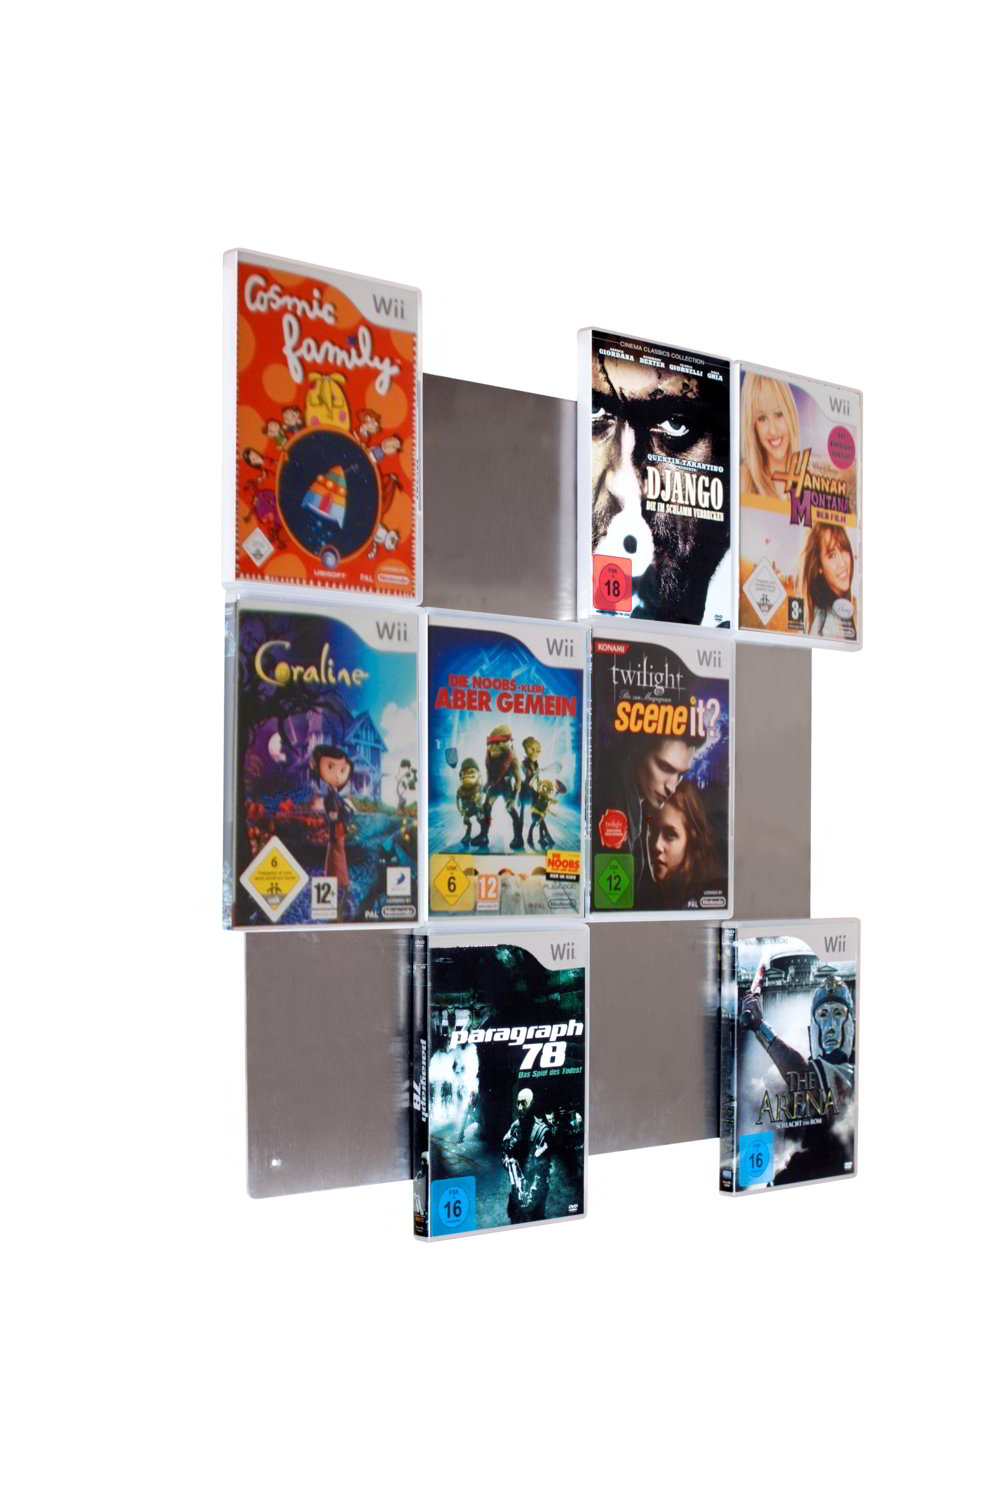 cd wall wii spiele regal system ihre sch nsten wii spiele als wandbild 634558379143 ebay. Black Bedroom Furniture Sets. Home Design Ideas